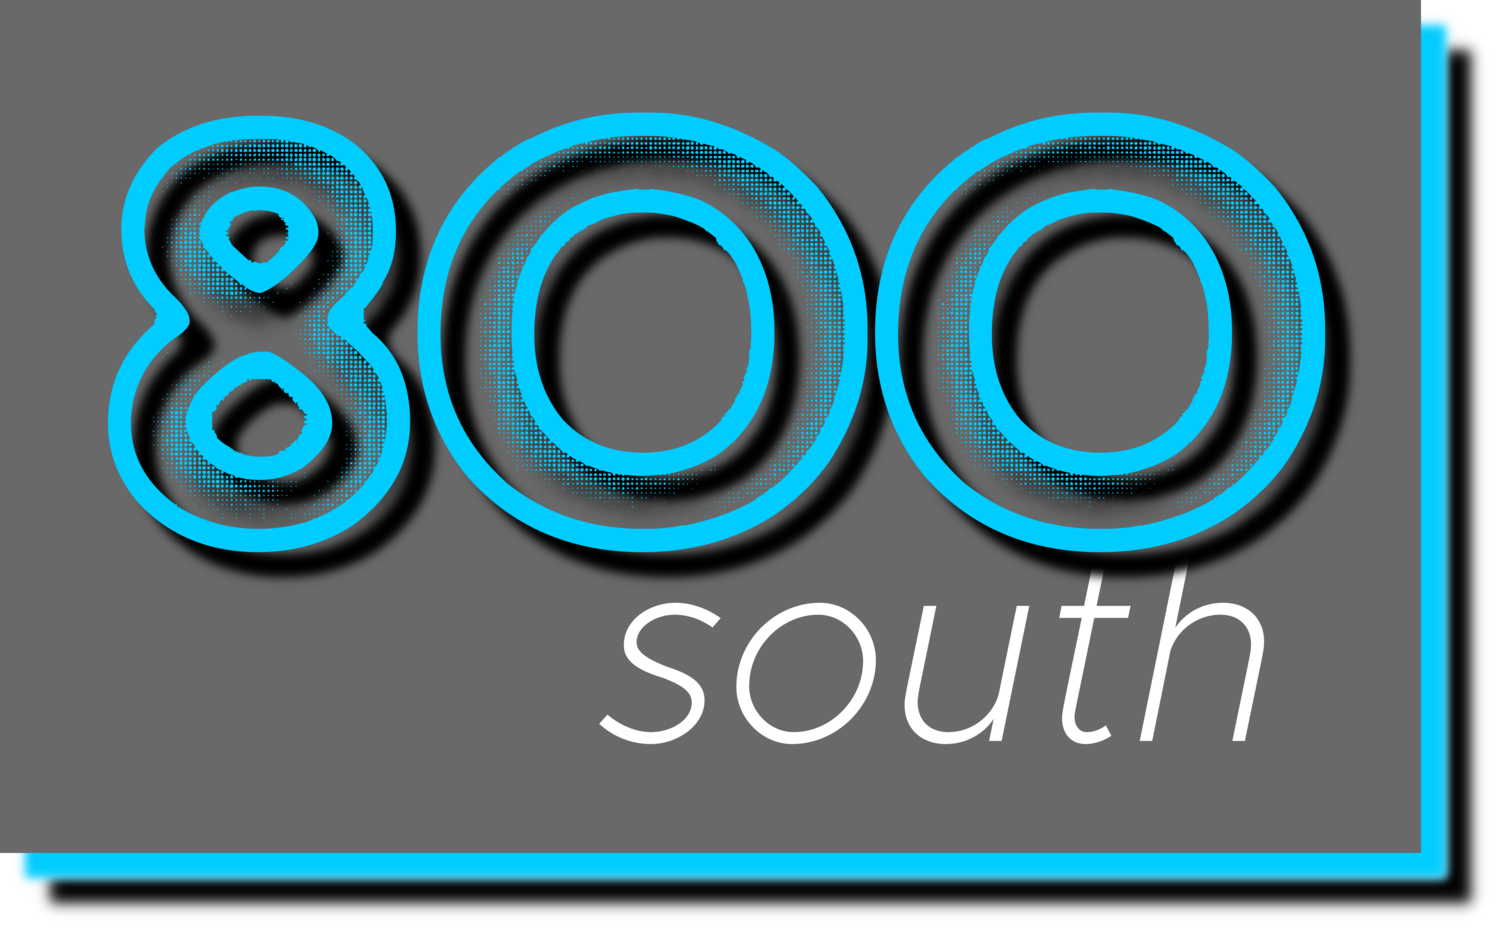 800 South